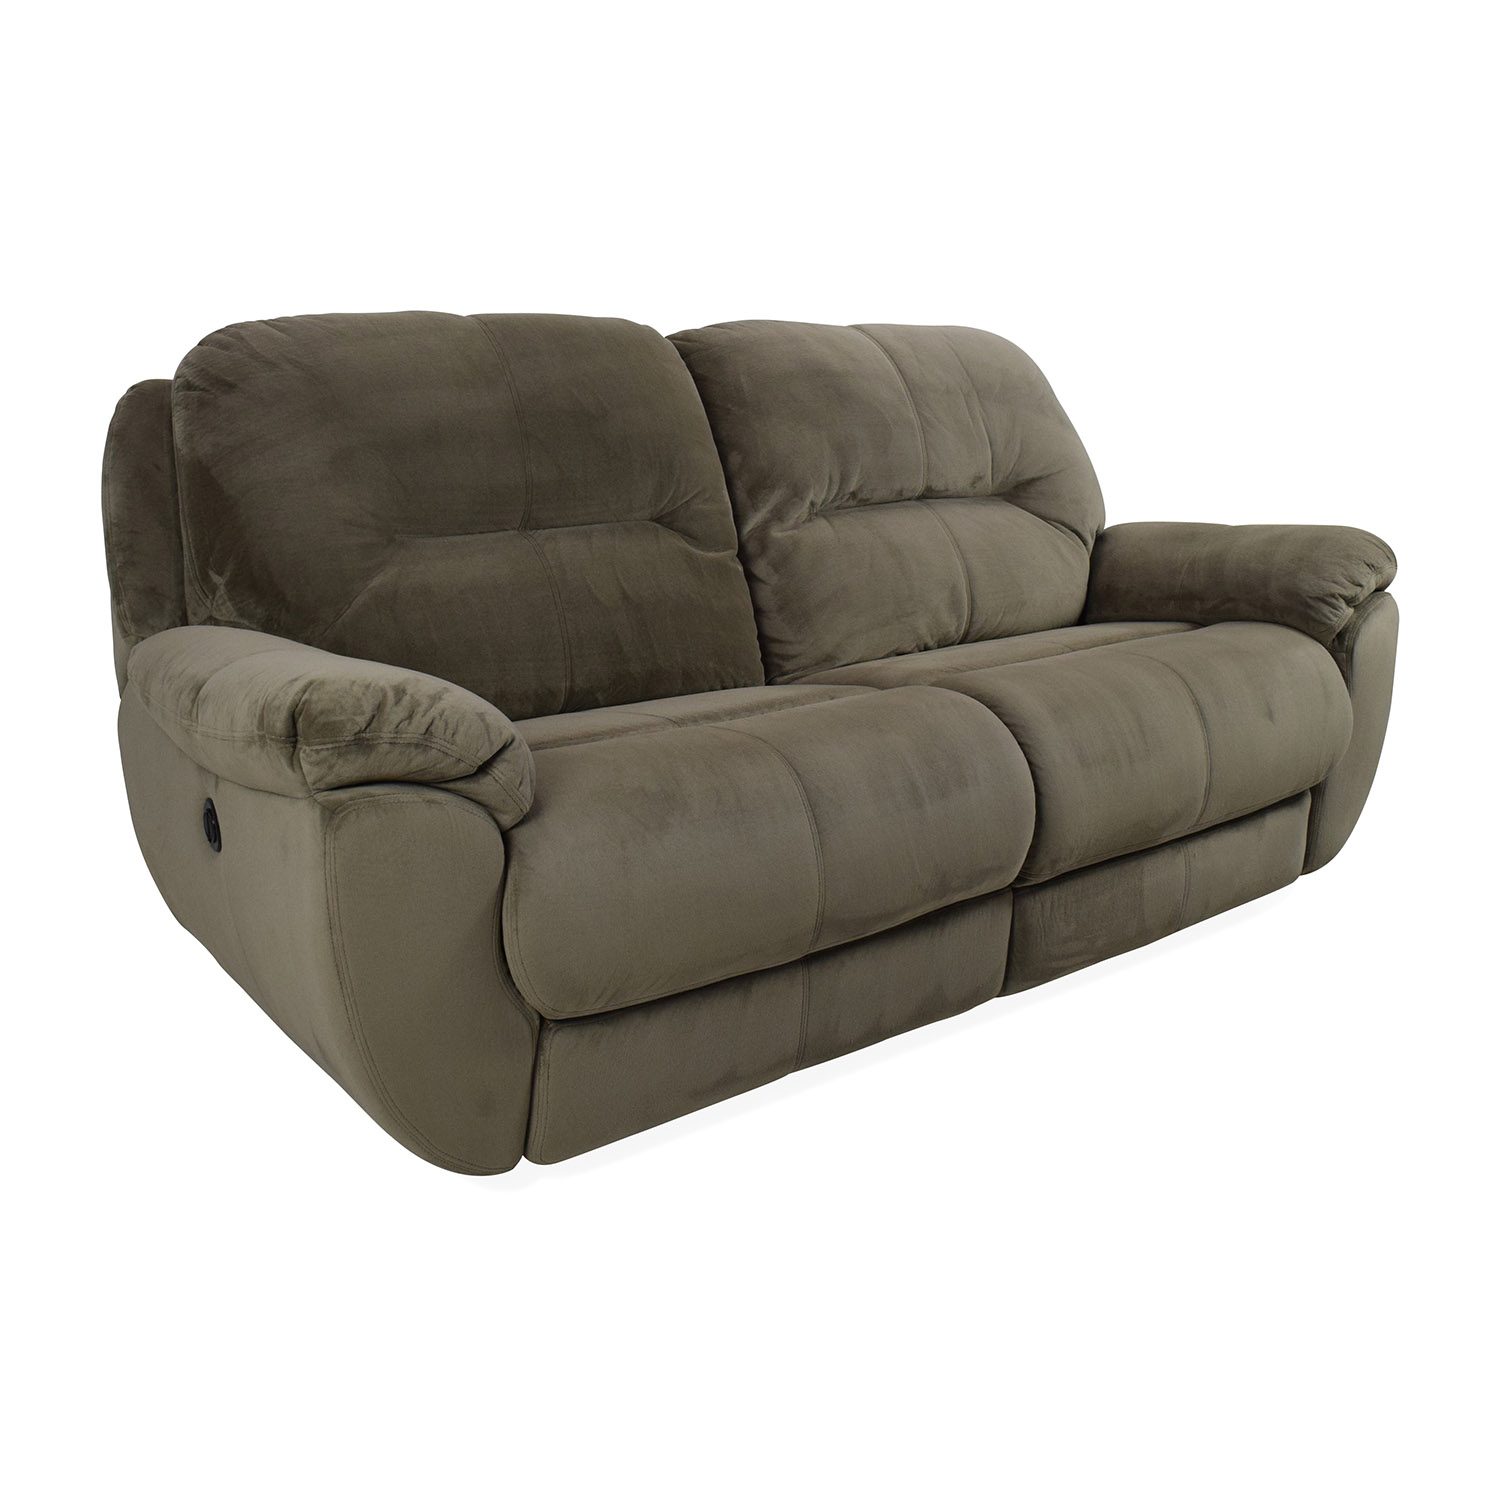 ... Kathy Ireland Home By Raymour And Flanigan Kathy Ireland Home Quinn  Power Reclining Sofa Second ...